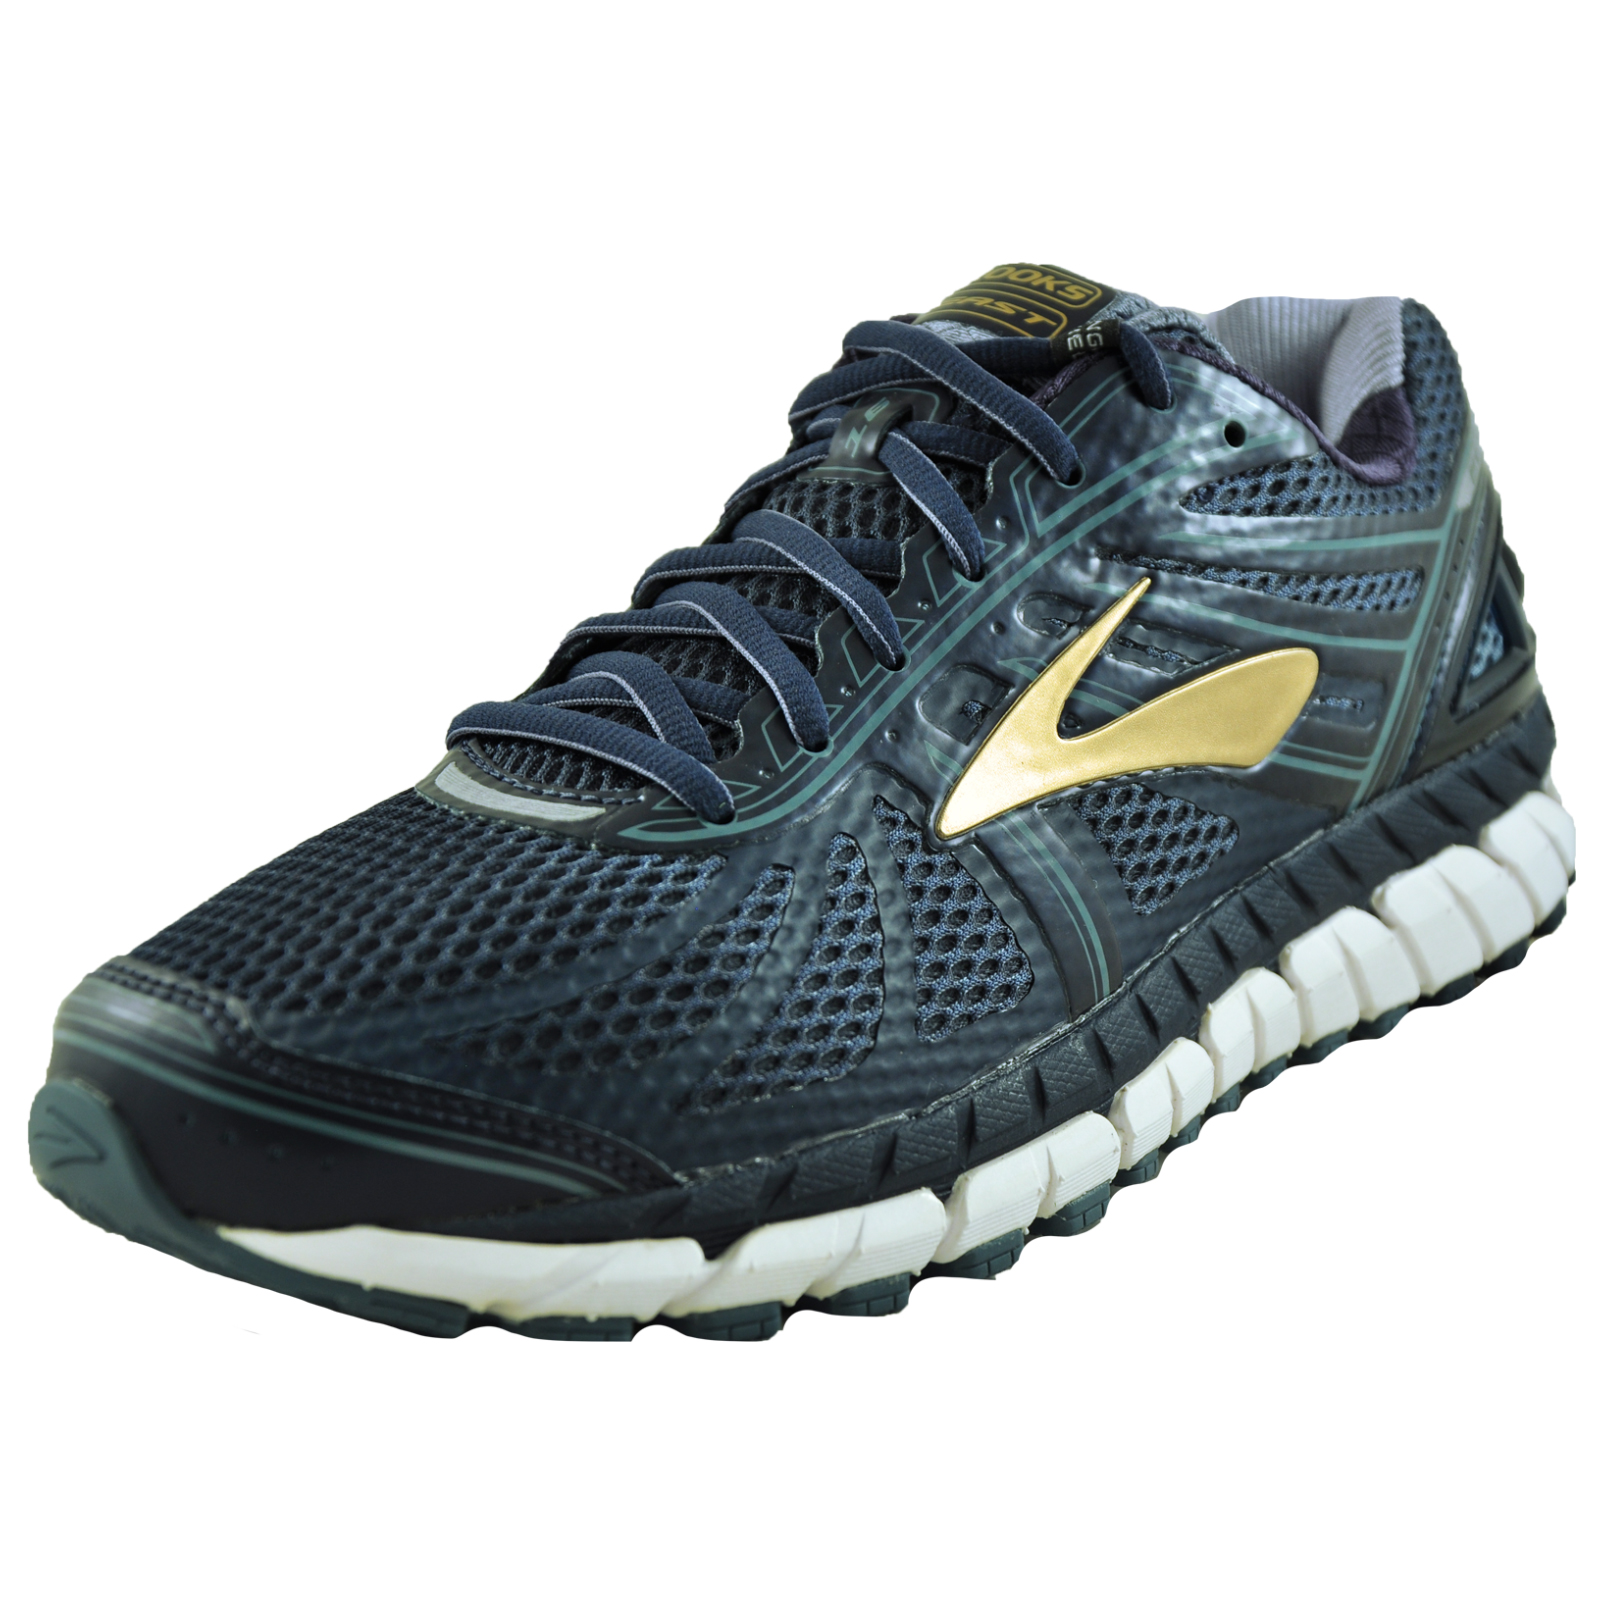 56bde0c627c Brooks Beast 16 Men s Premium Running Shoes Fitness Gym Trainers Navy UK 8  Only